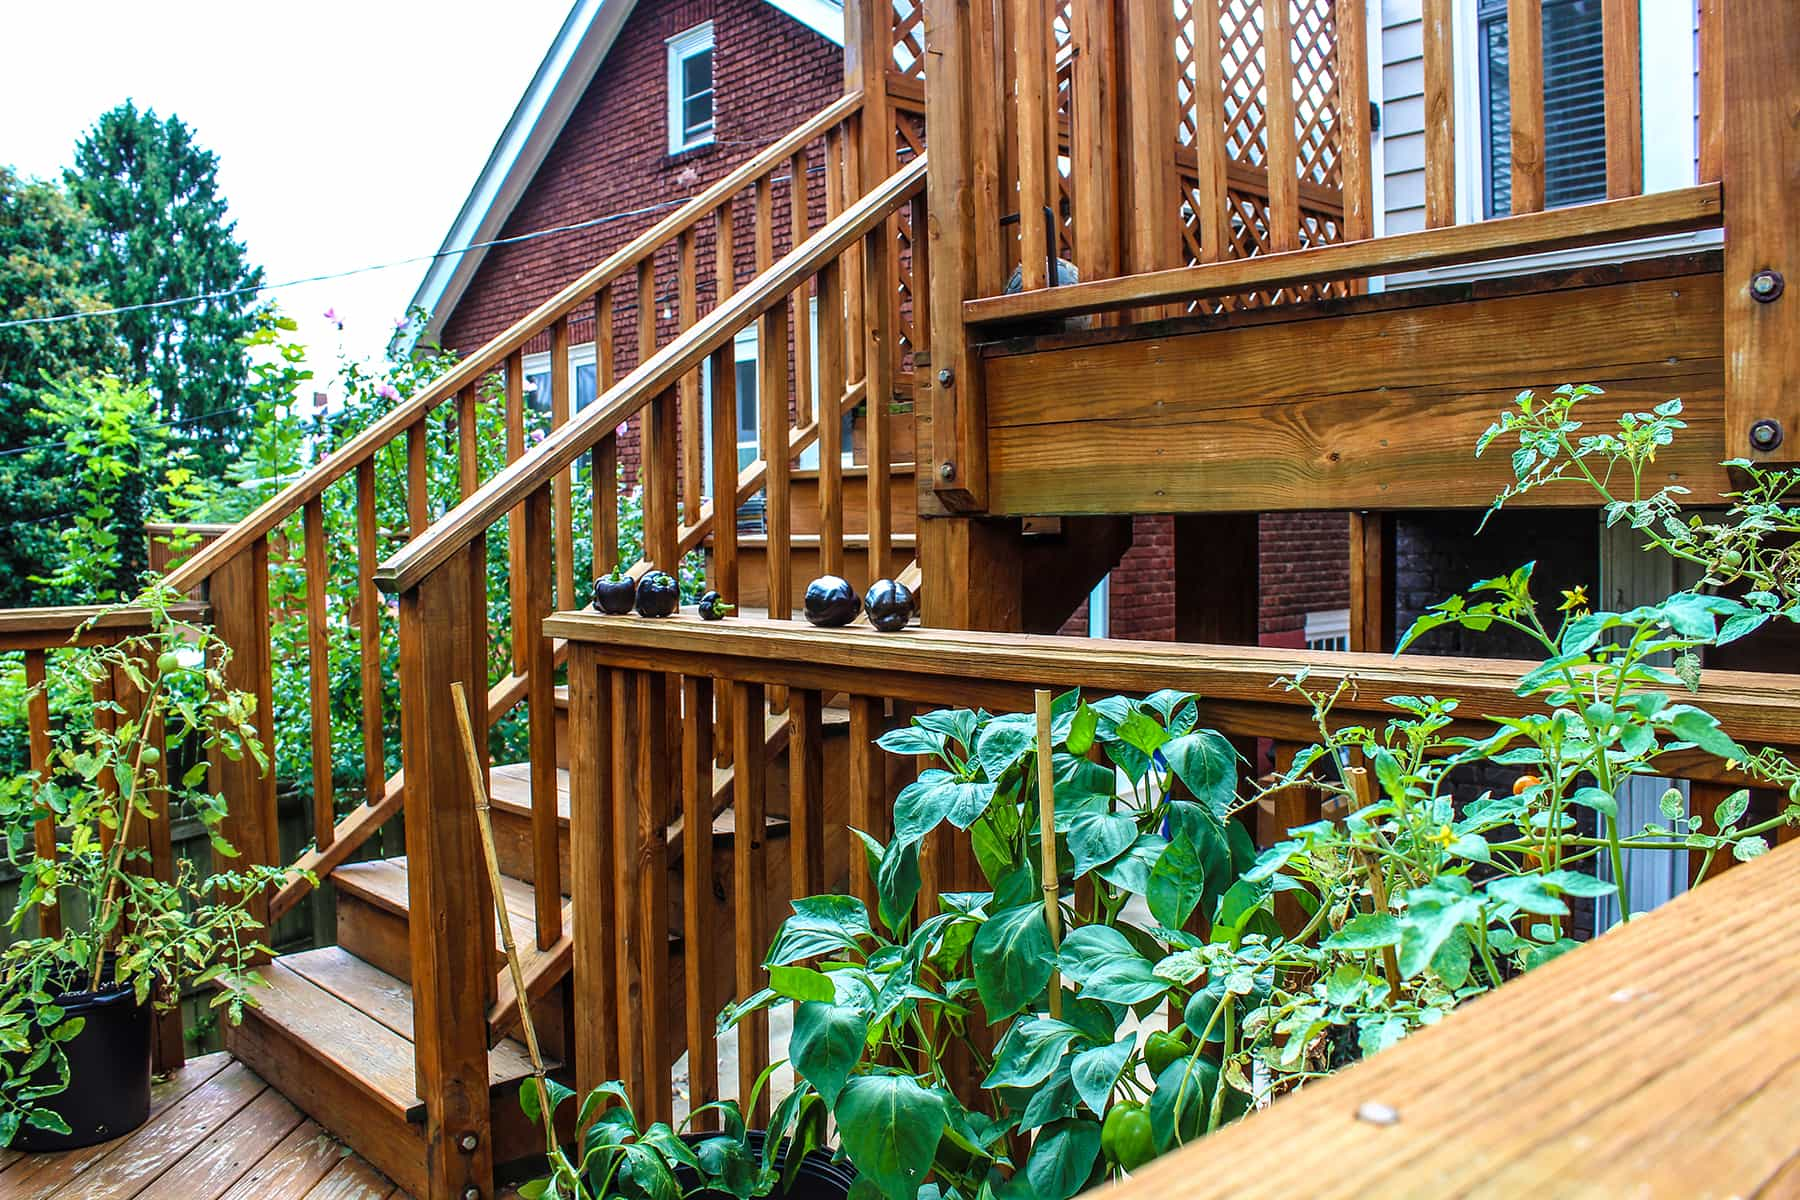 Our Four Bedroom Home, Which Is Located On A Quiet, Safe Street In The  Downtown Area Of Asheville, NC Is Perfectly Suited To Provide Living  Assistance For ...